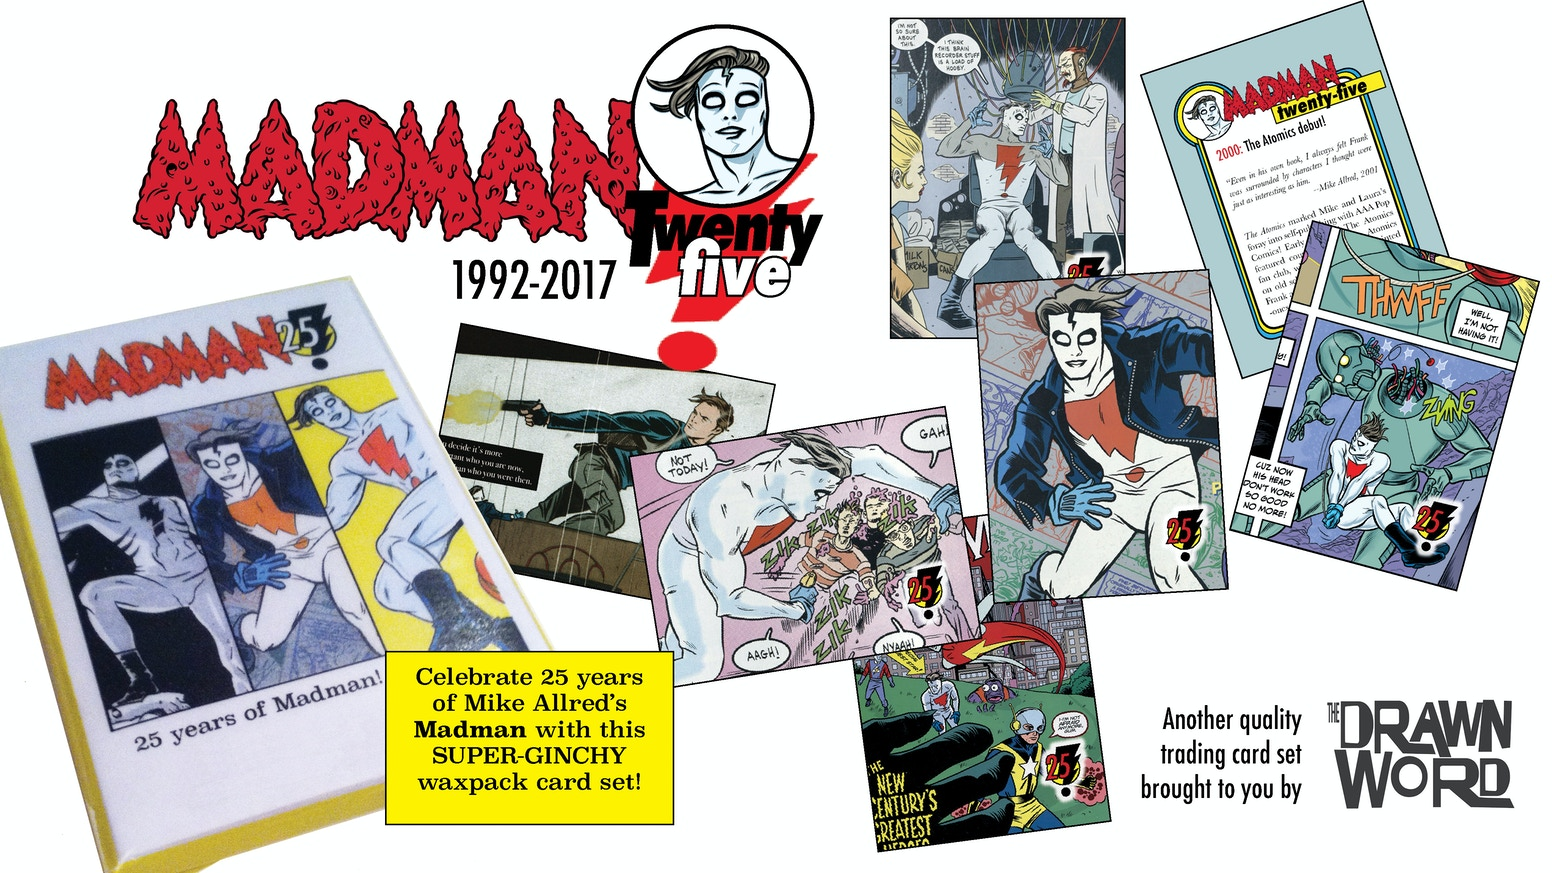 Celebrate 25 years of Mike Allred's Madman with 25 trading cards in an old school wax wrapper